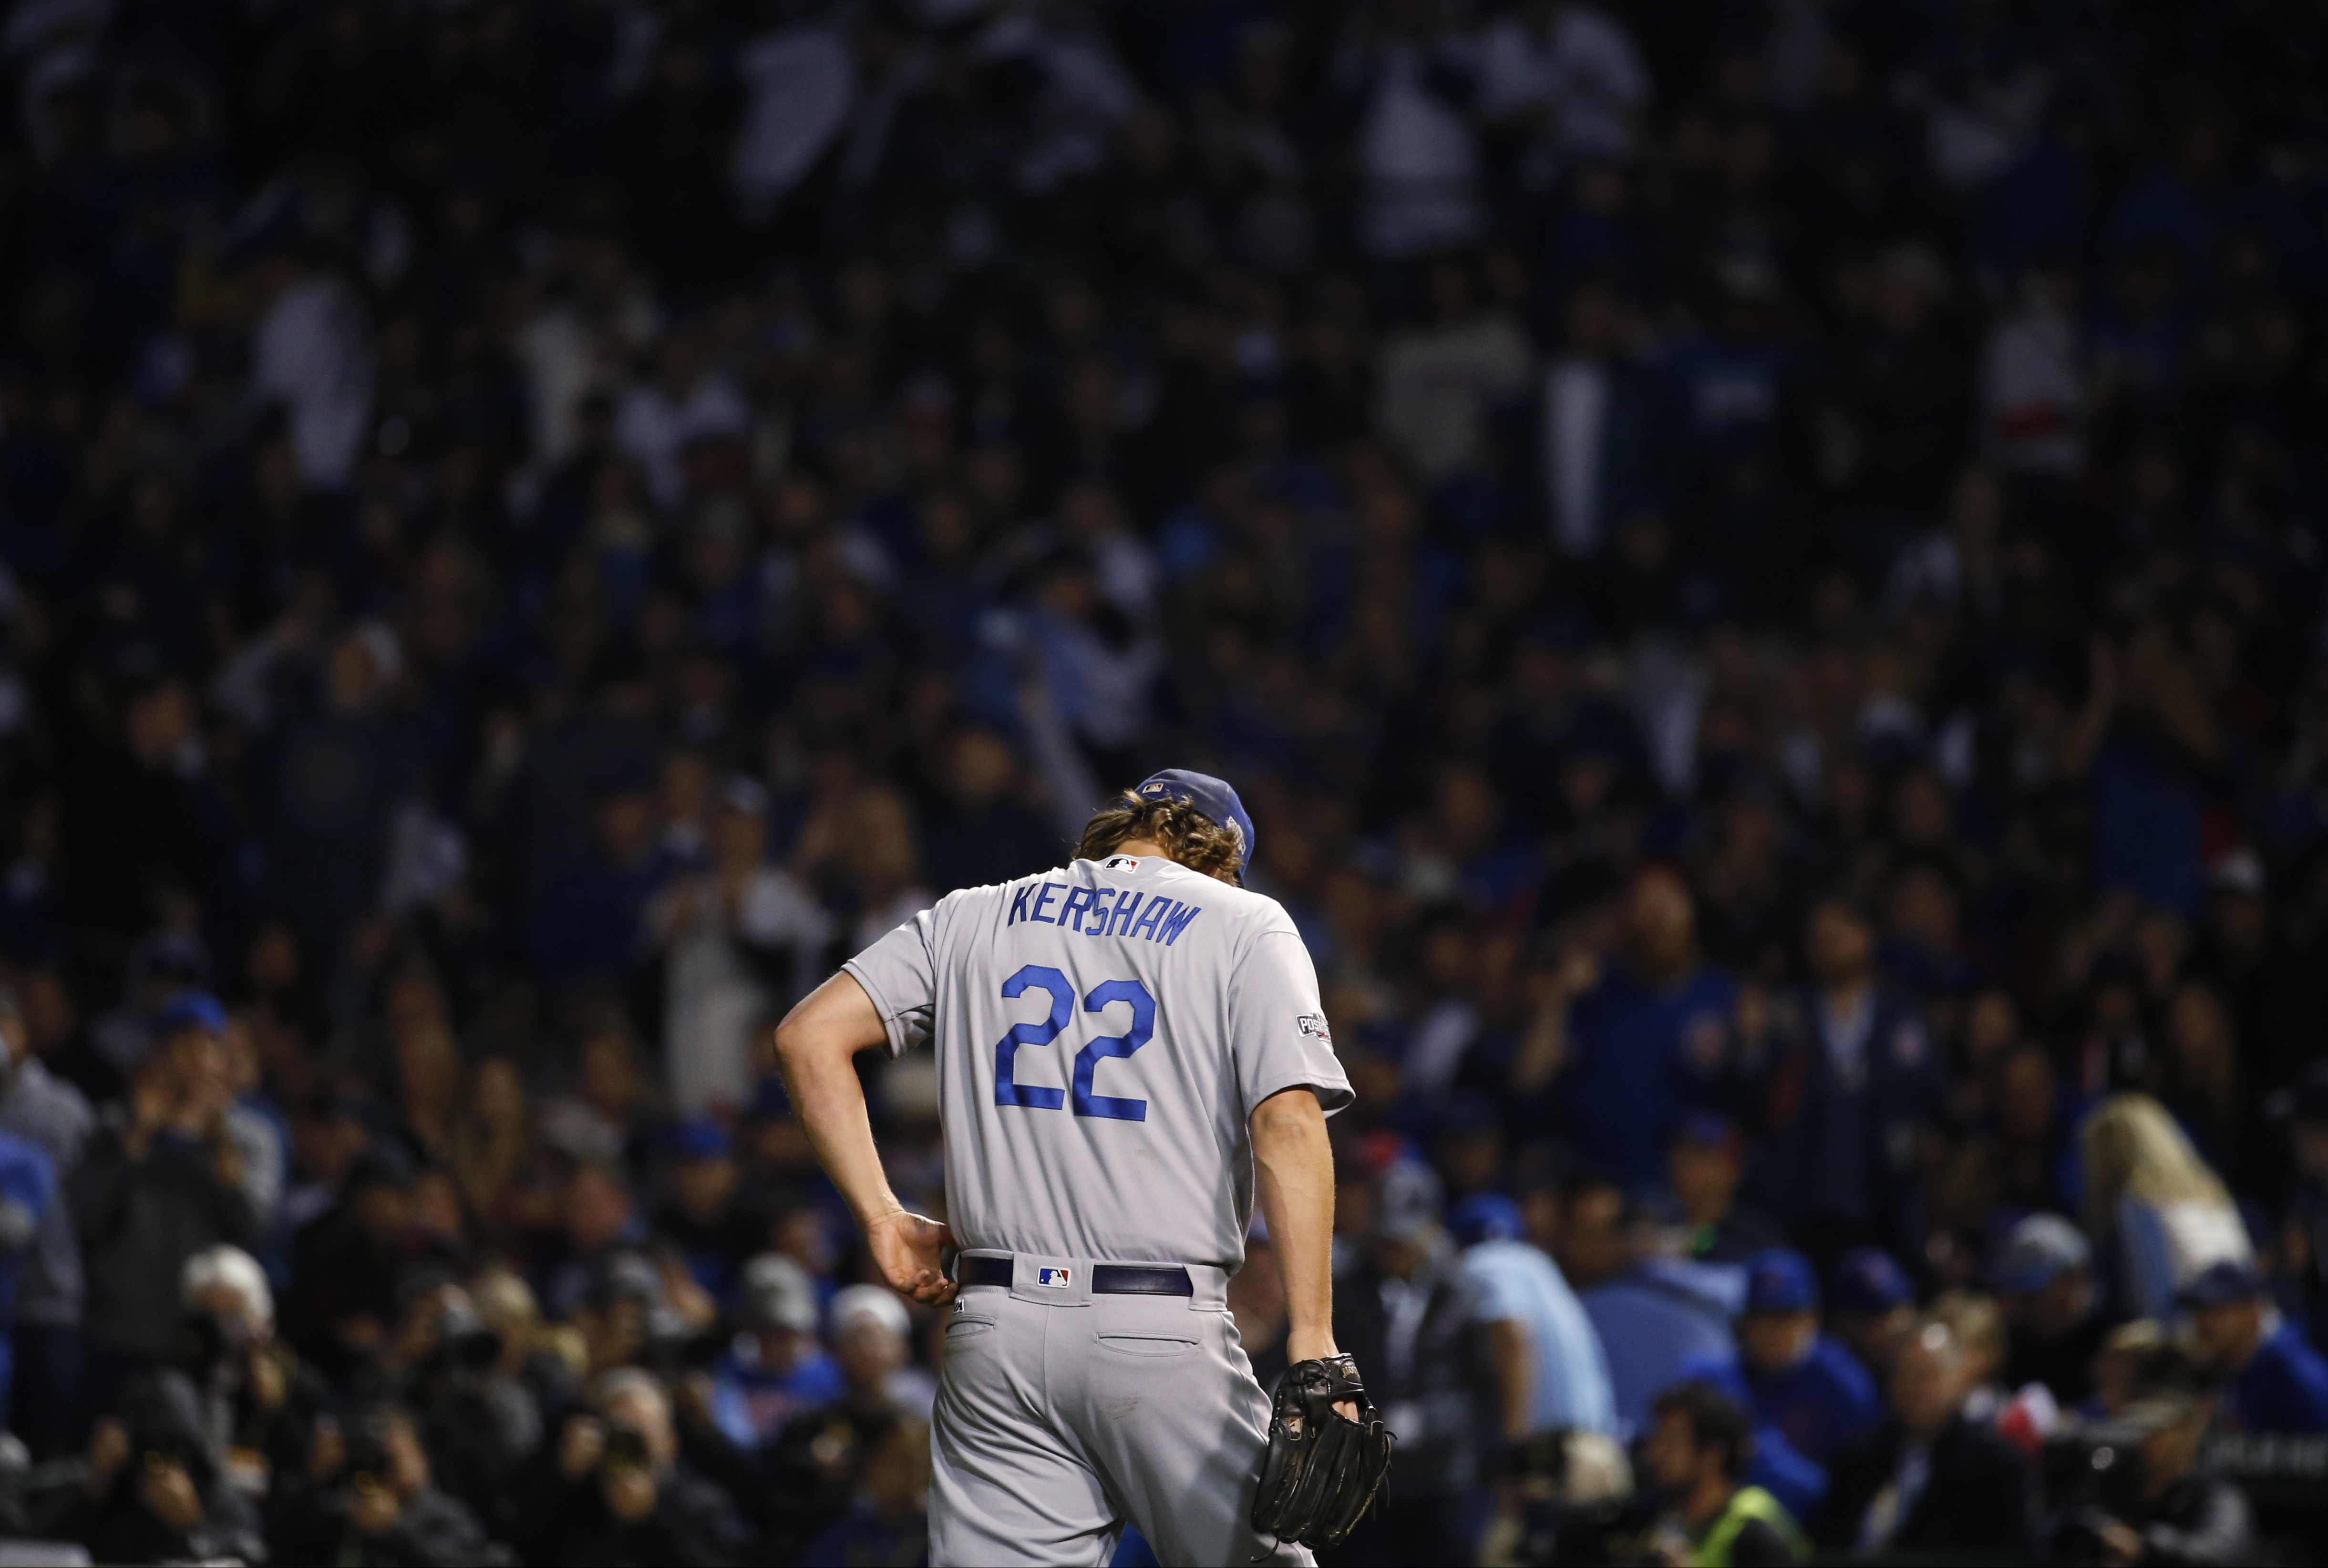 Los Angeles Dodgers starting pitcher Clayton Kershaw (22) walks back to the dugout after the fifth inning of Game 6 of the National League baseball championship series against the Chicago Cubs, Saturday, Oct. 22, 2016, in Chicago. (AP Photo/Nam Y. Huh)